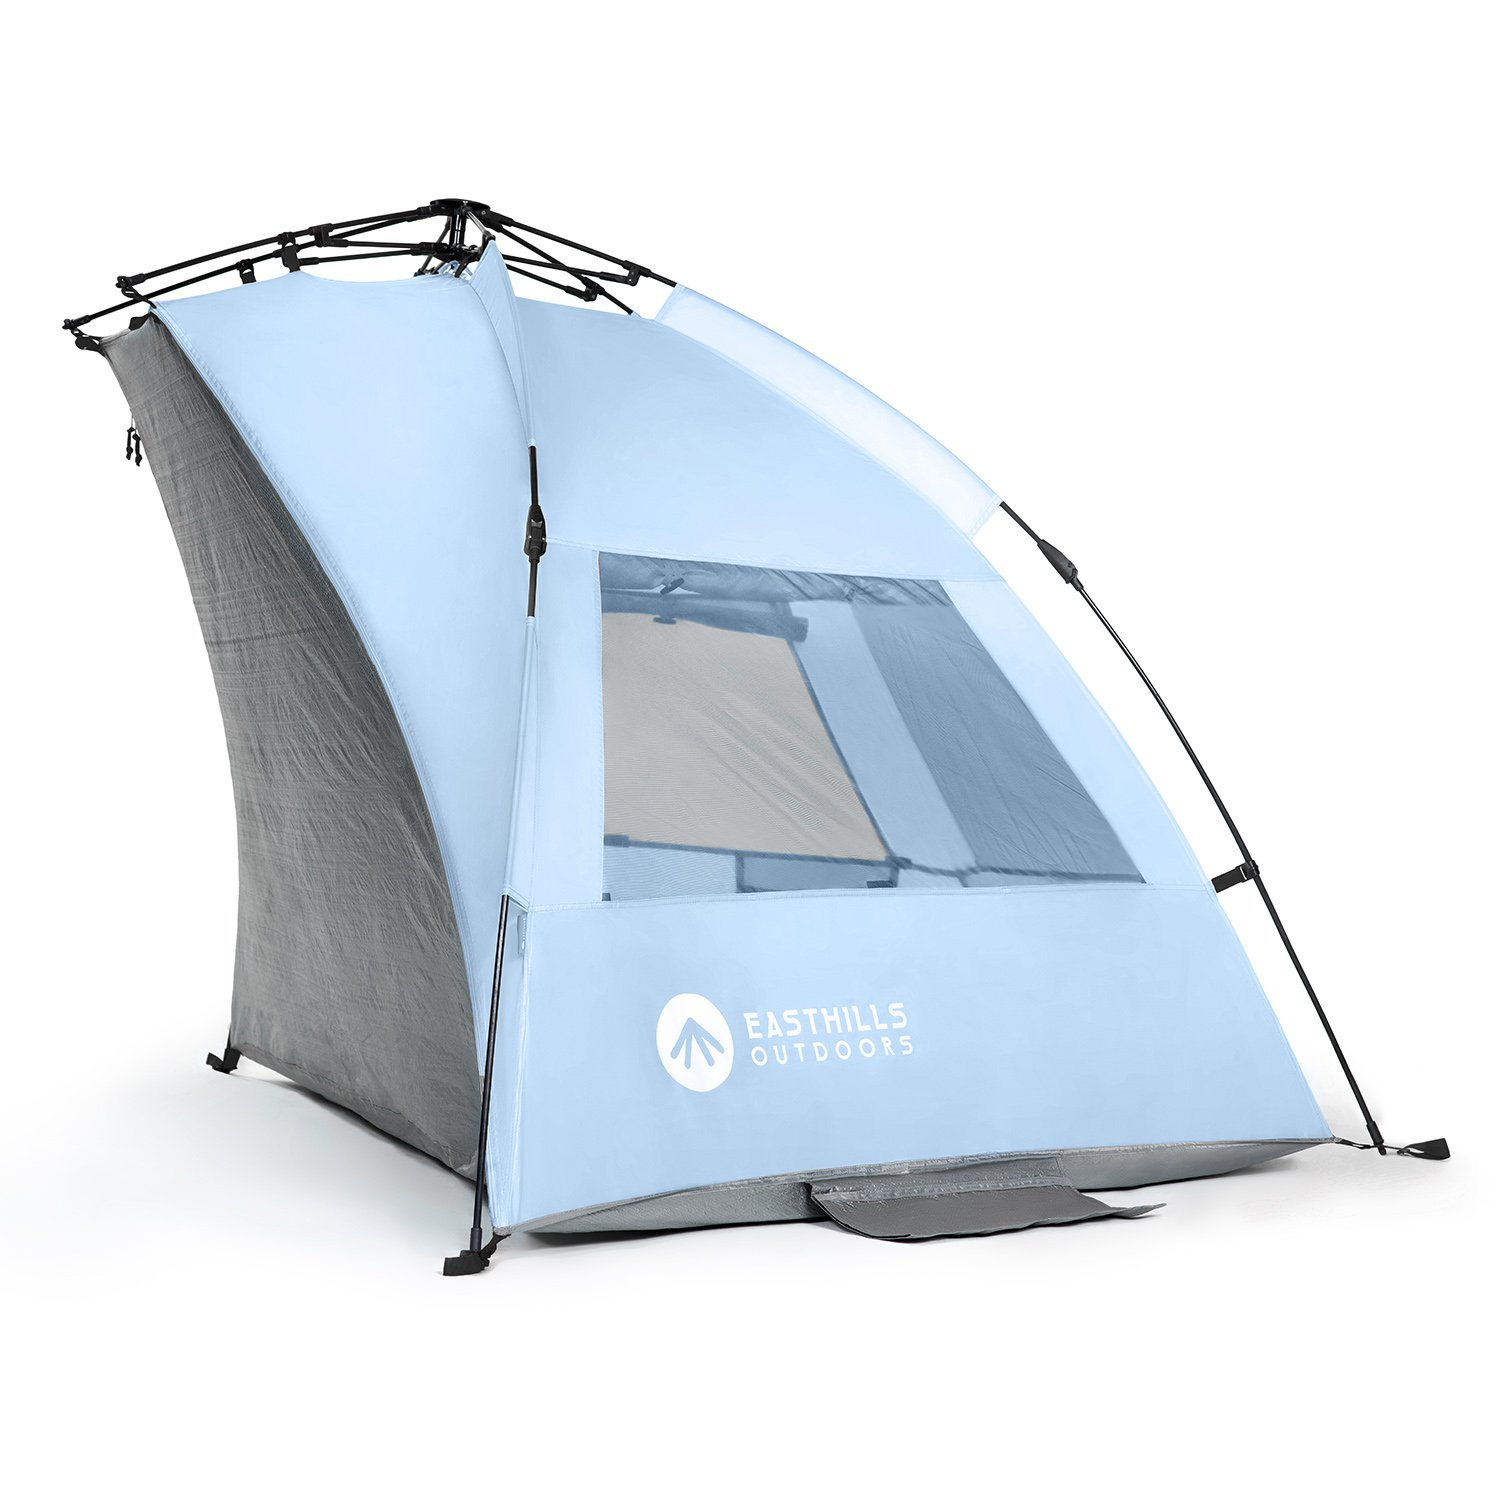 Extended Zippered Porch Included Easthills Outdoors Instant Shader Extended Easy Up Beach Tent Sun Shelter